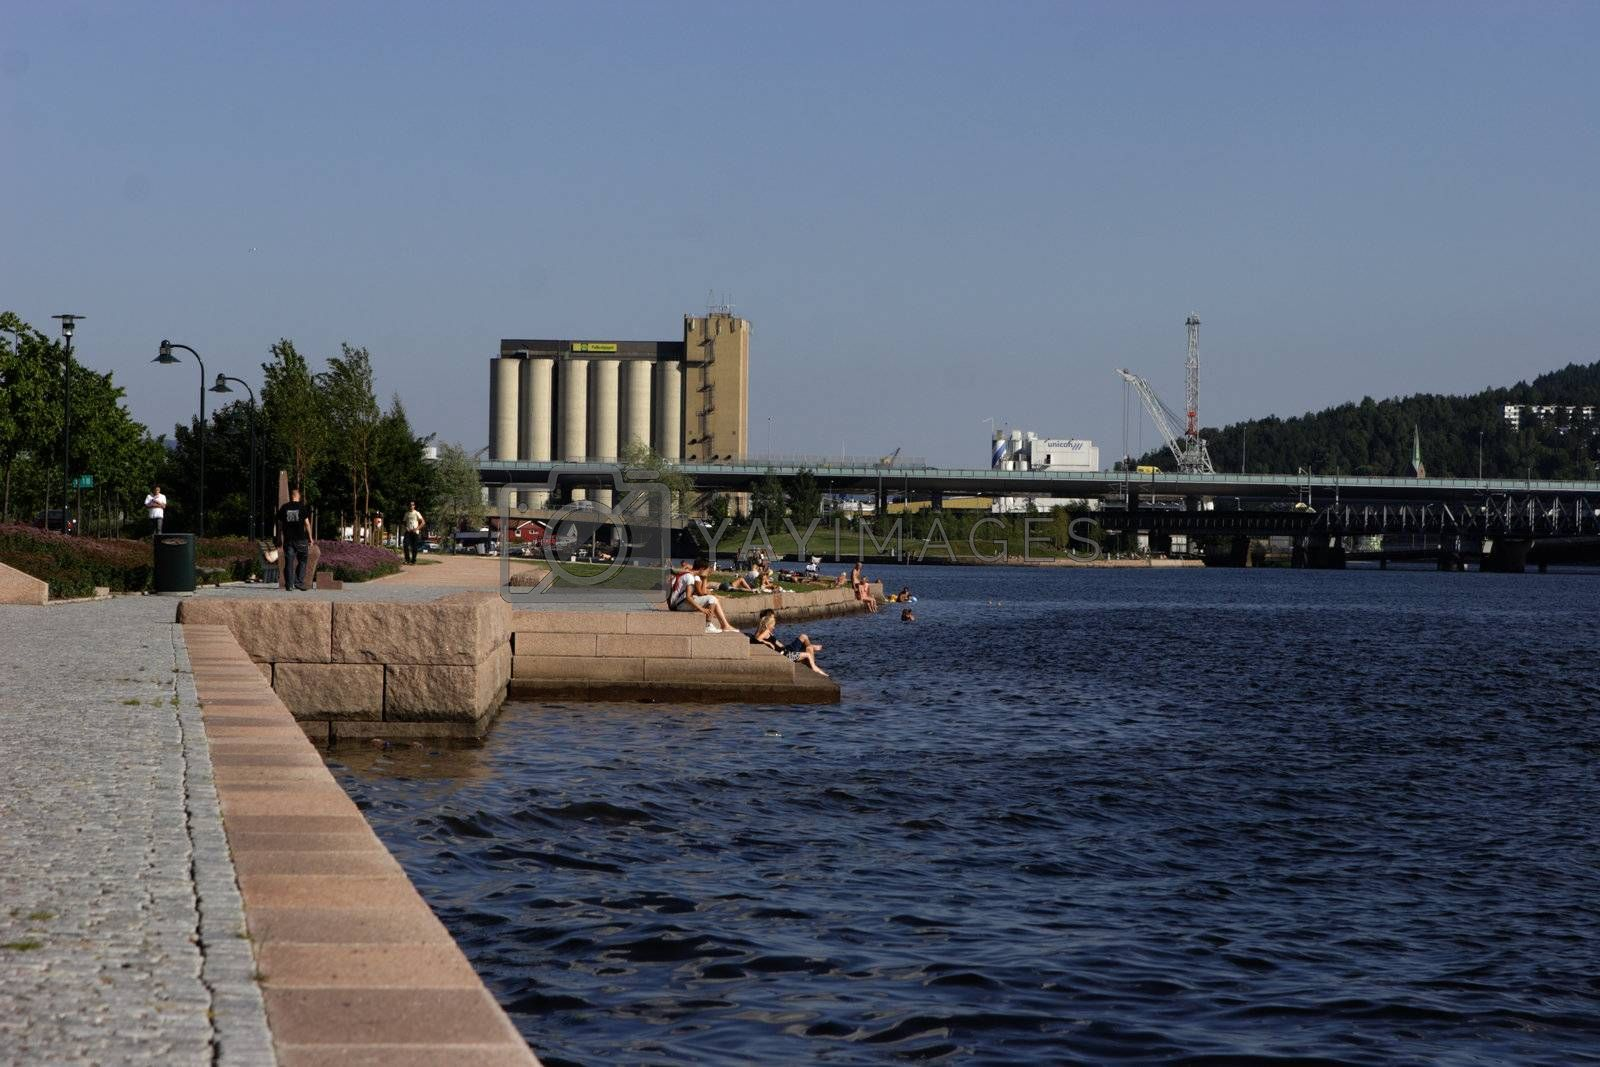 Summer at the waterfront in Drammen, Norway